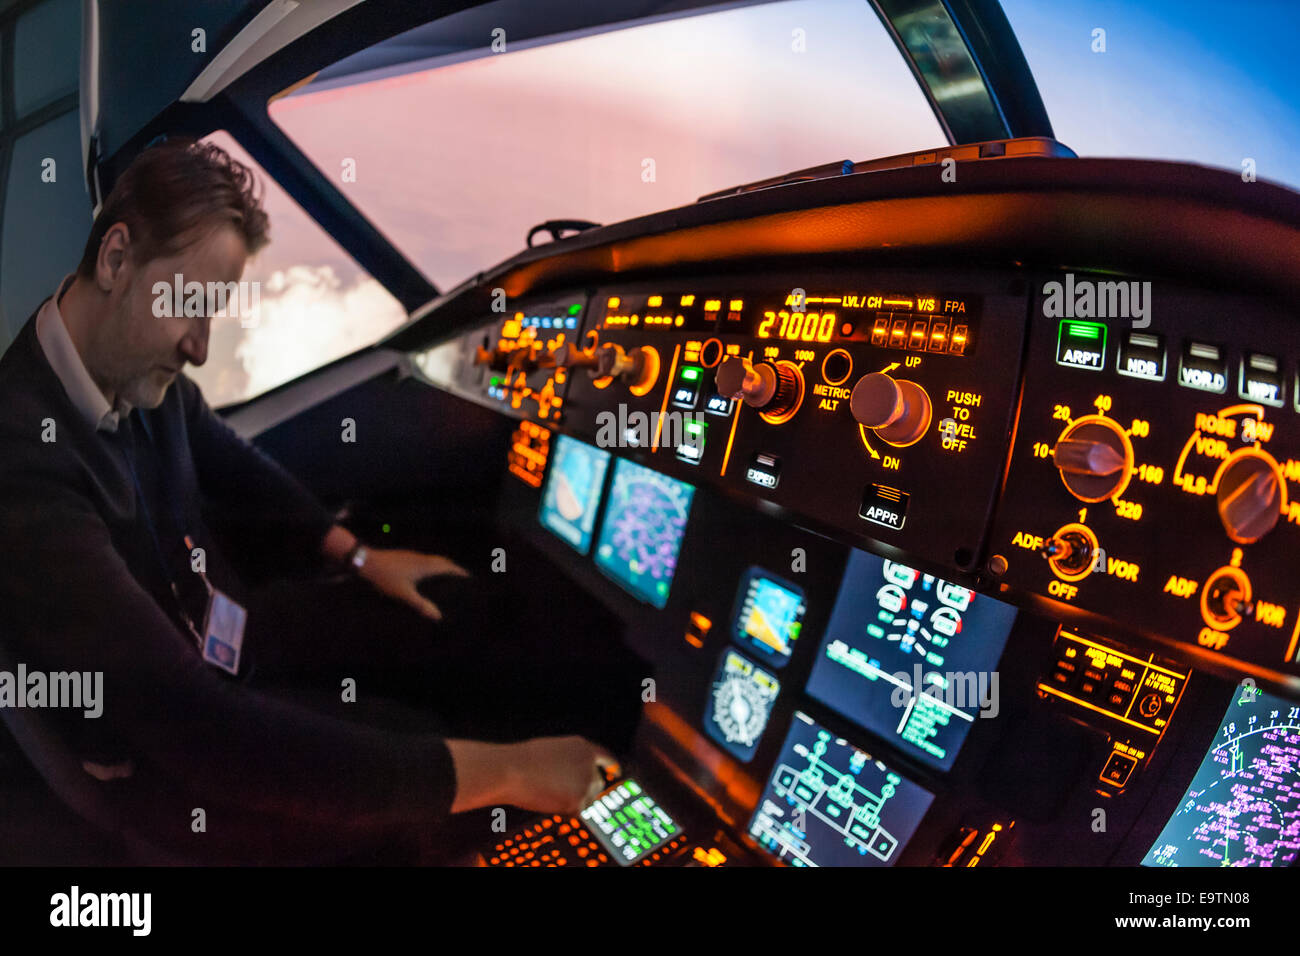 Cockpit of an Airbus A320 flight simulator that is used for training of professional airline pilots (pilot adjusting - Stock Image